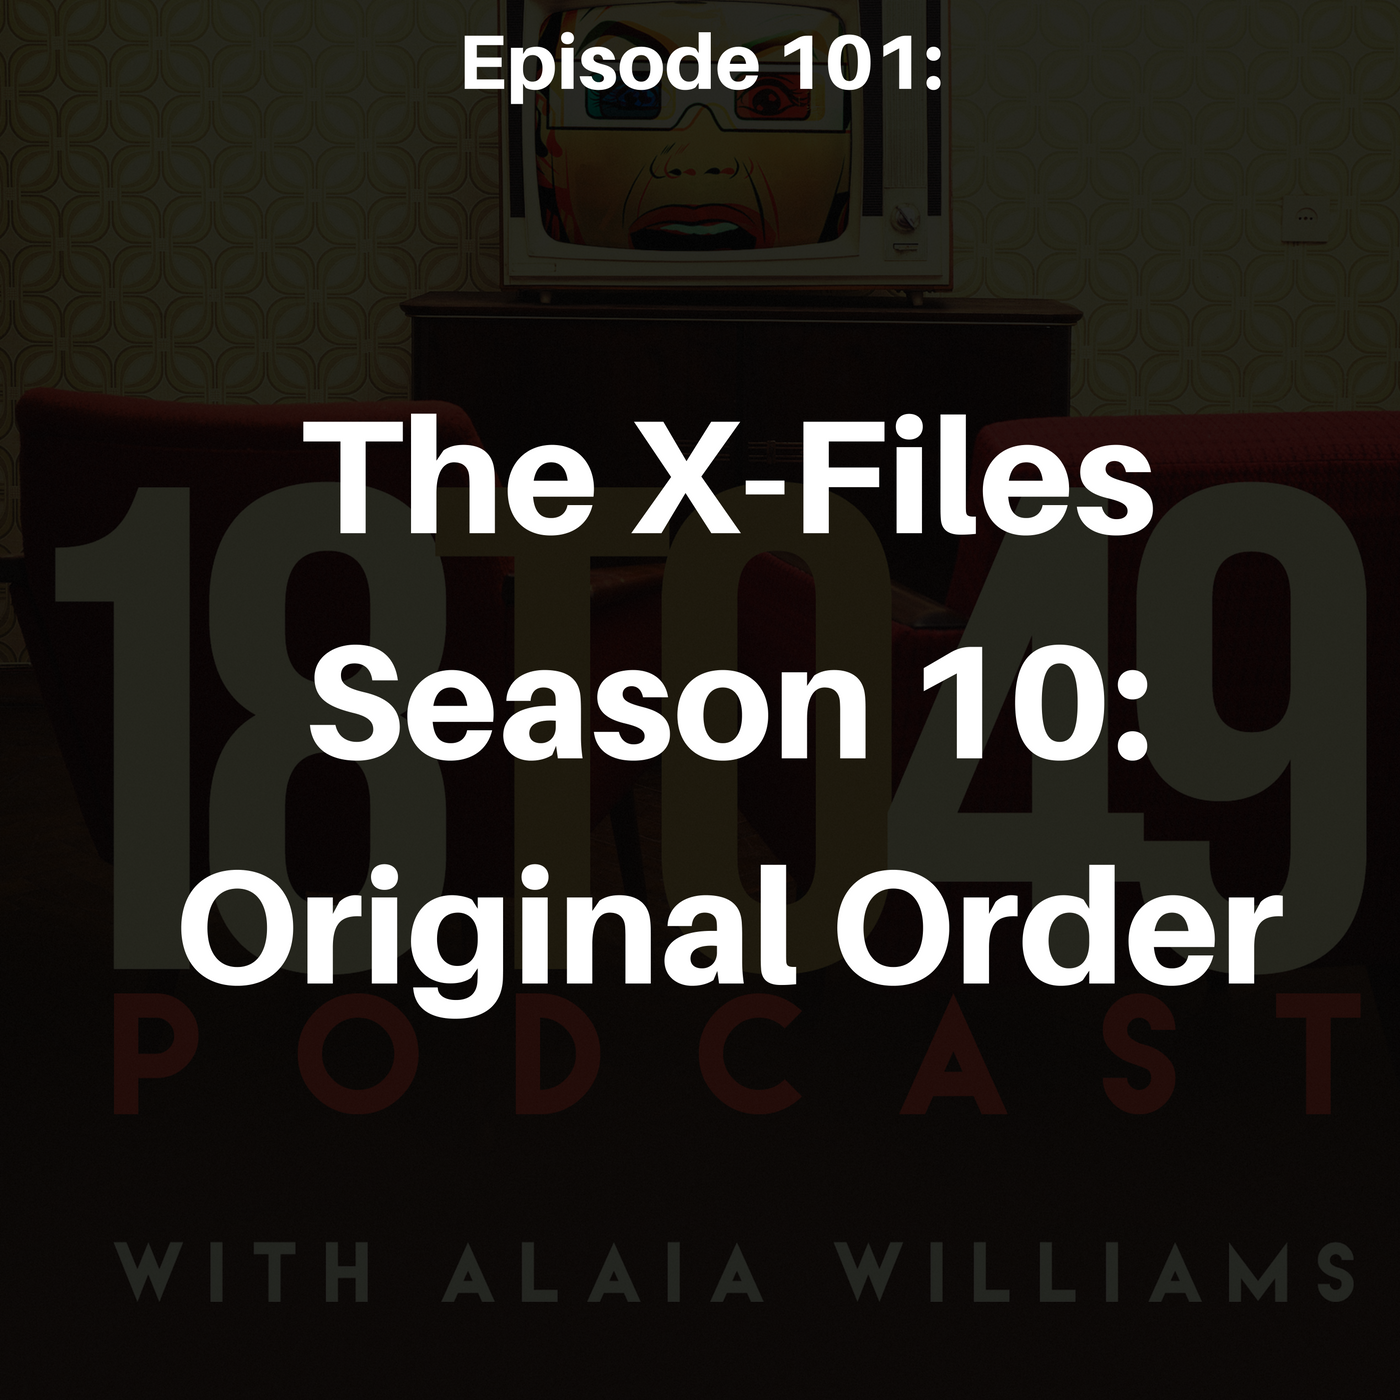 The X-Files Season 10: Original Order